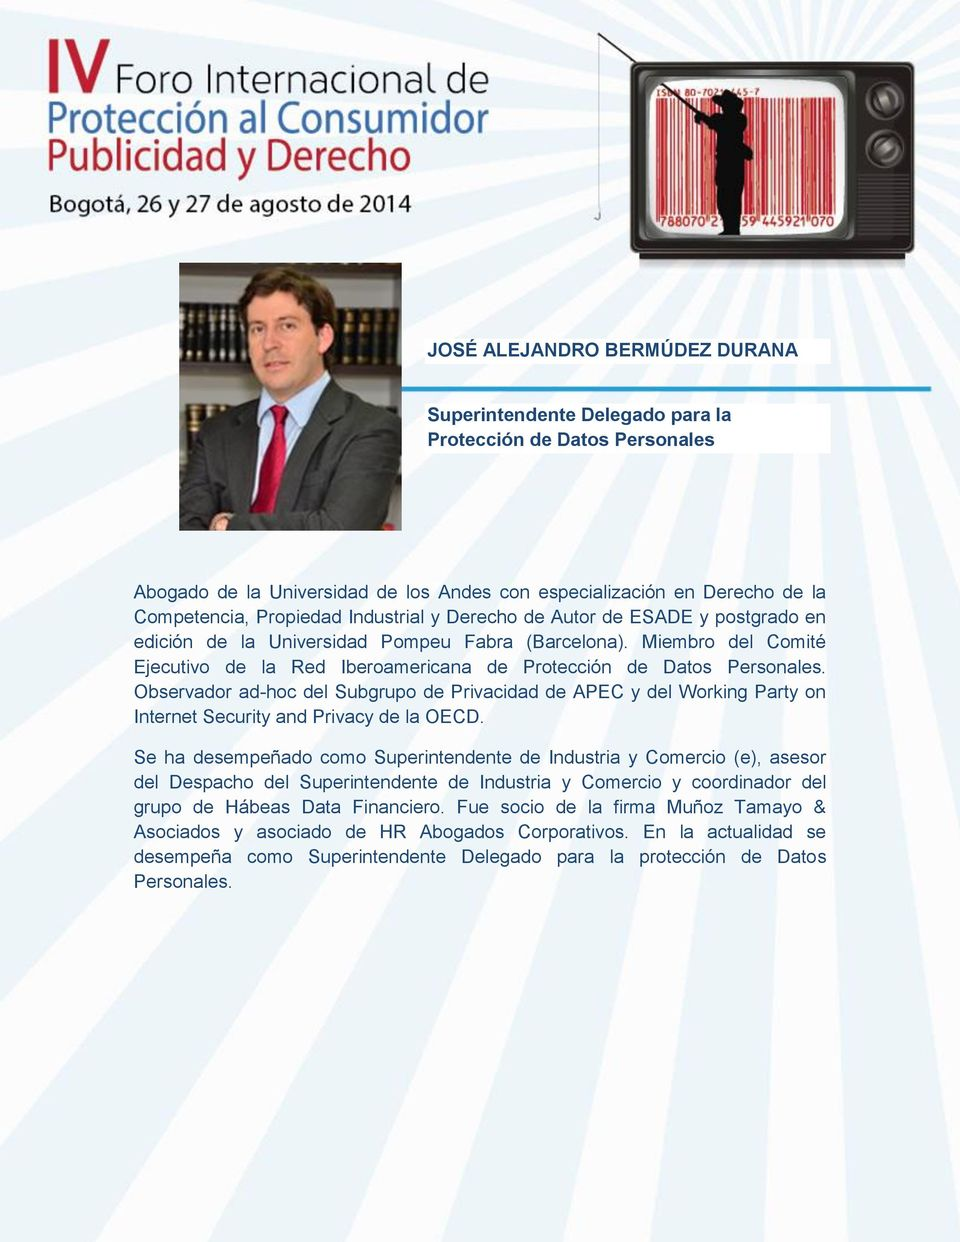 Observador ad-hoc del Subgrupo de Privacidad de APEC y del Working Party on Internet Security and Privacy de la OECD.